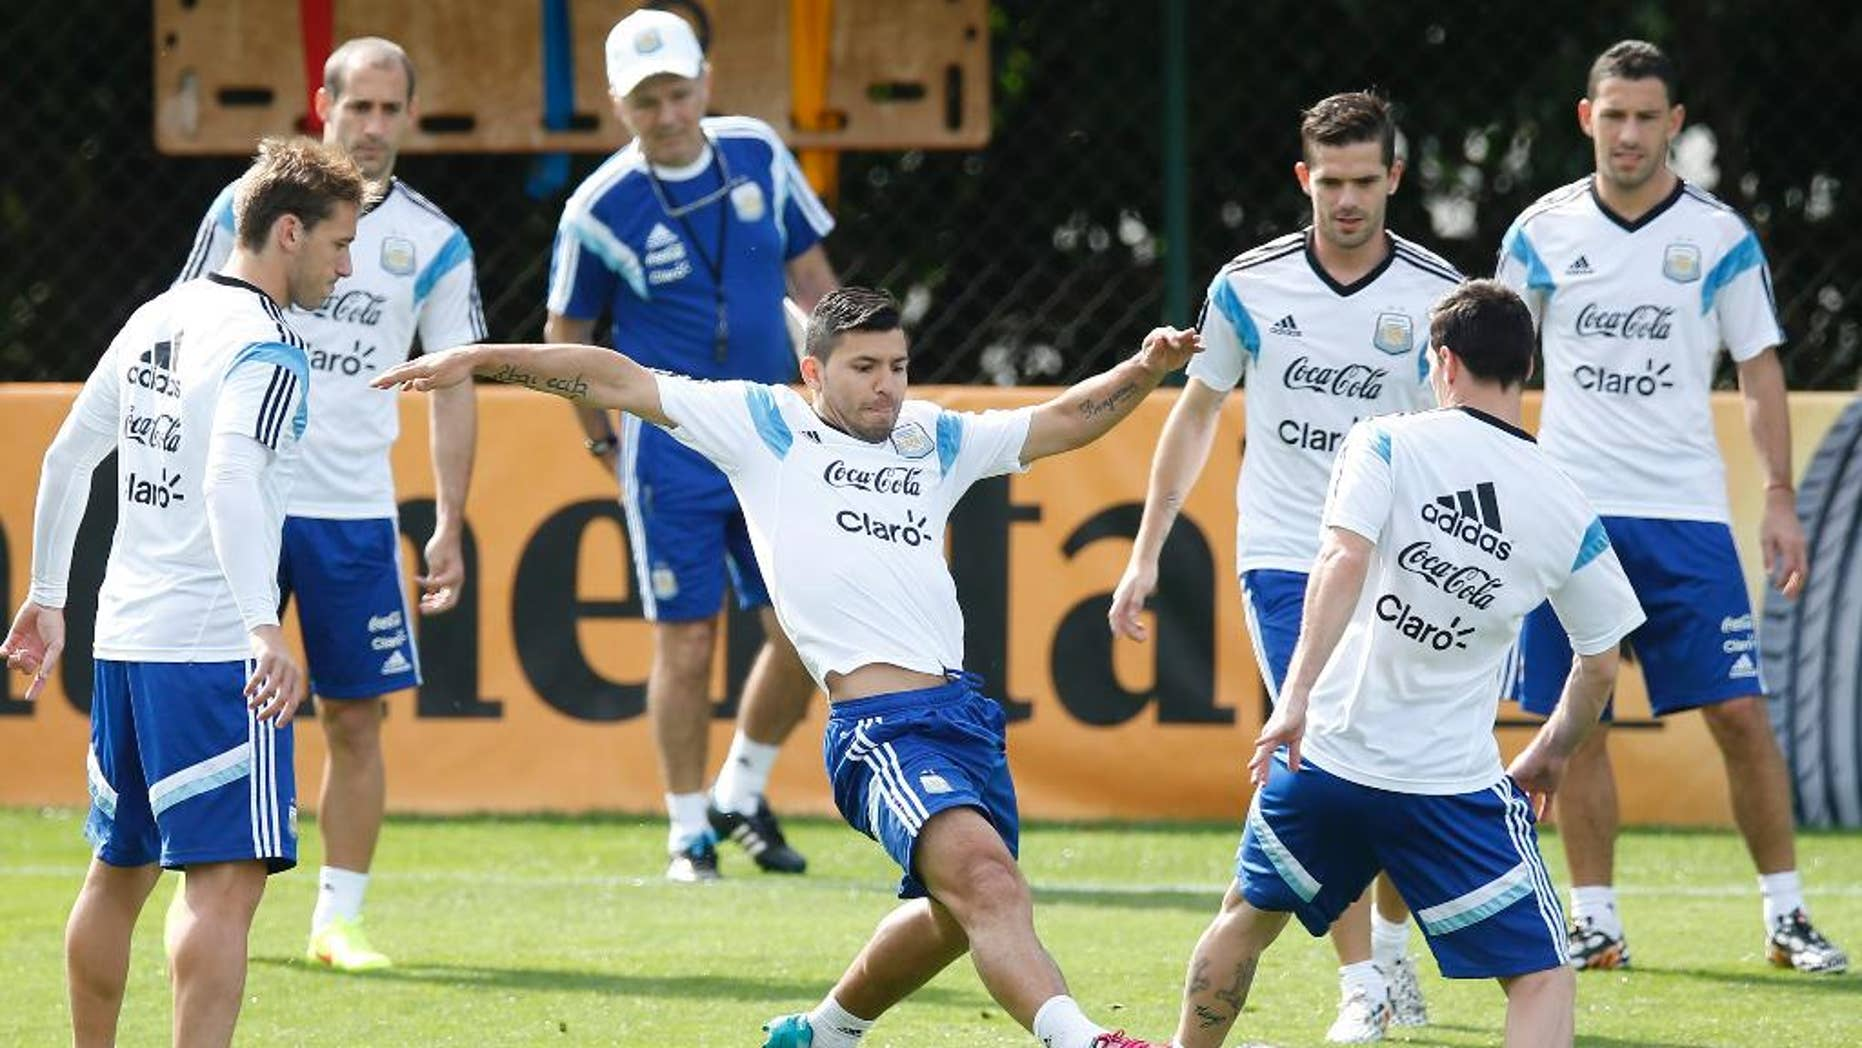 Argentina's Sergio Aguero, center, vies for the ball with Lionel Messi, right, during a training session in Vespasiano, near Belo Horizonte, Brazil, Wednesday, June 18, 2014.  Argentina plays in group F of the 2014 soccer World Cup. (AP Photo/Victor R. Caivano)